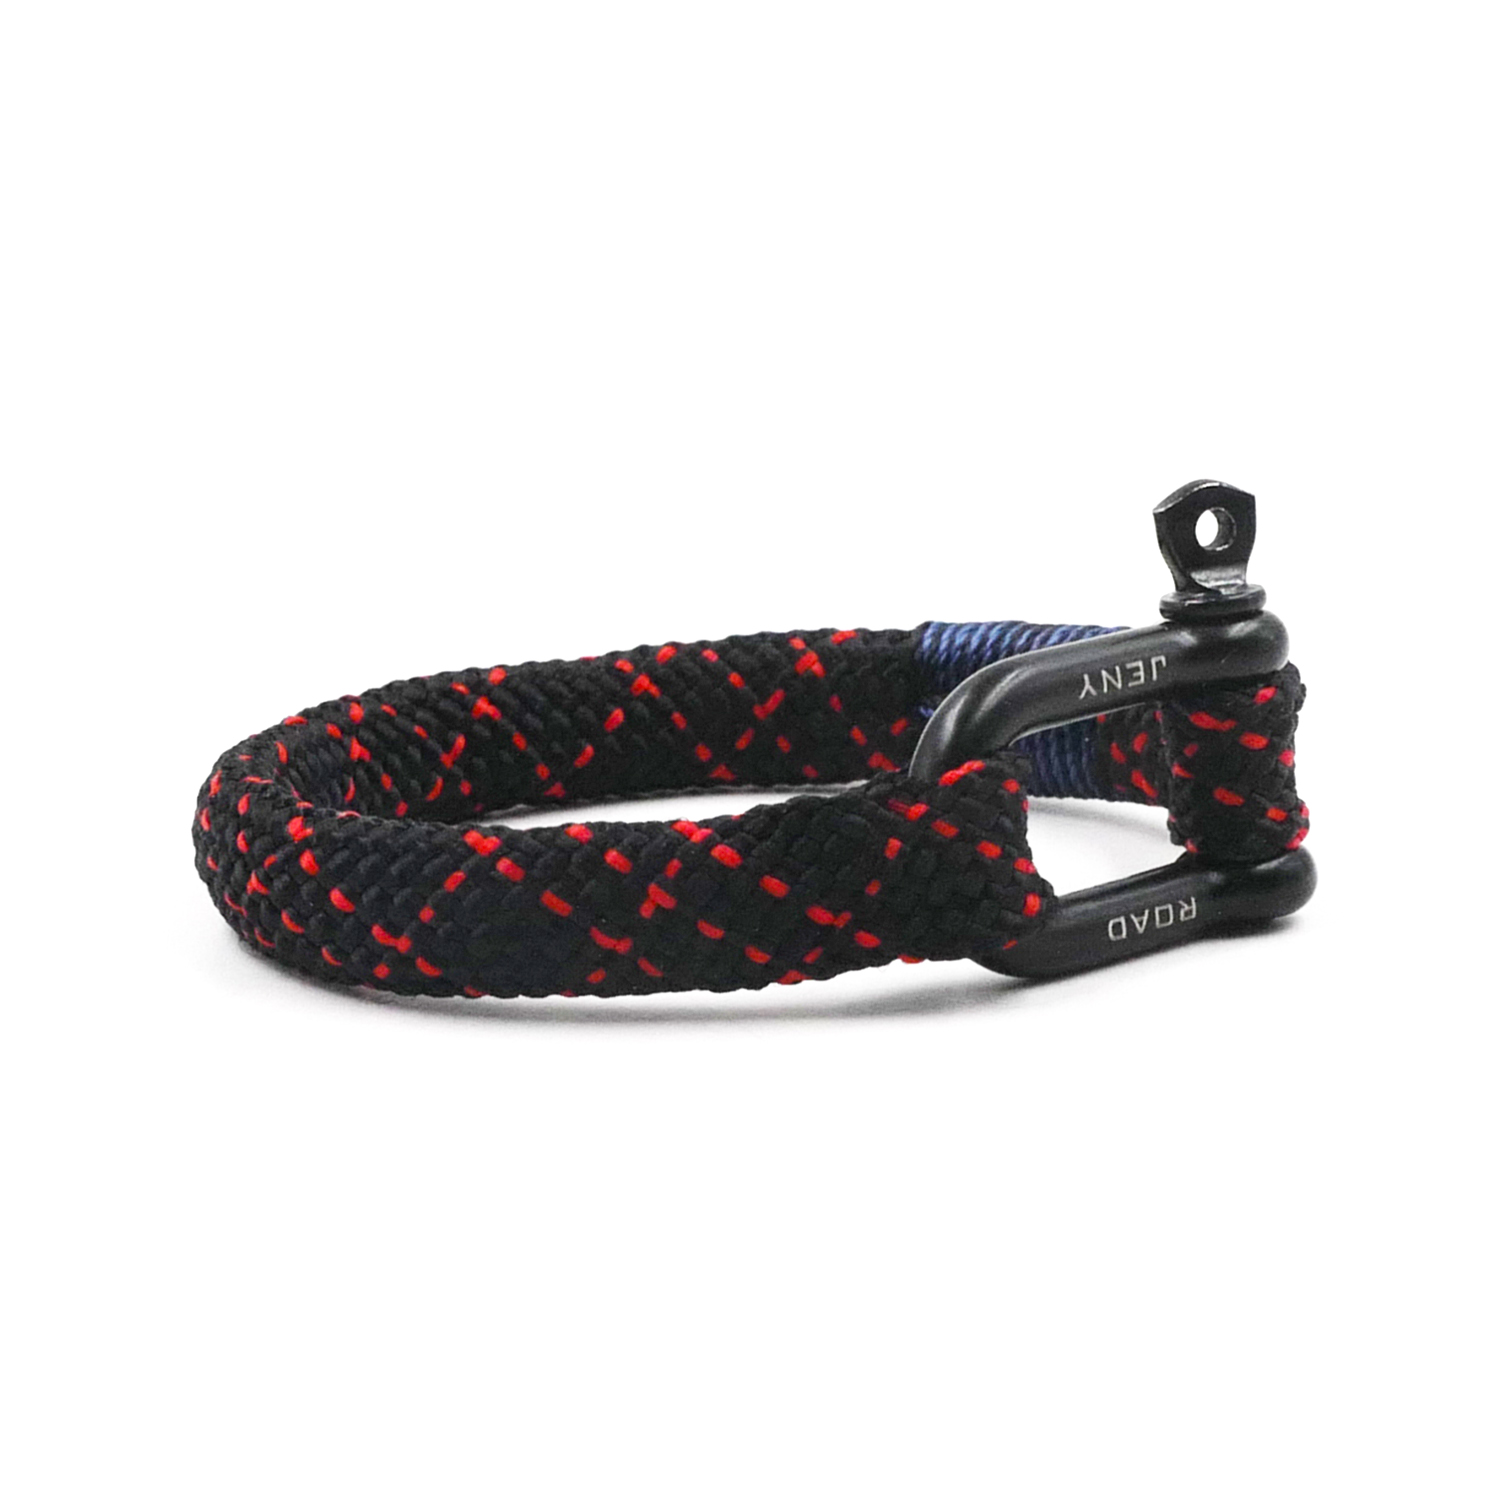 Nautical Braided Bracelet Hand-made Military Paracord Bracelet Parachute Cord Wrist Strap Wristband With D-Shackle BRT-N504